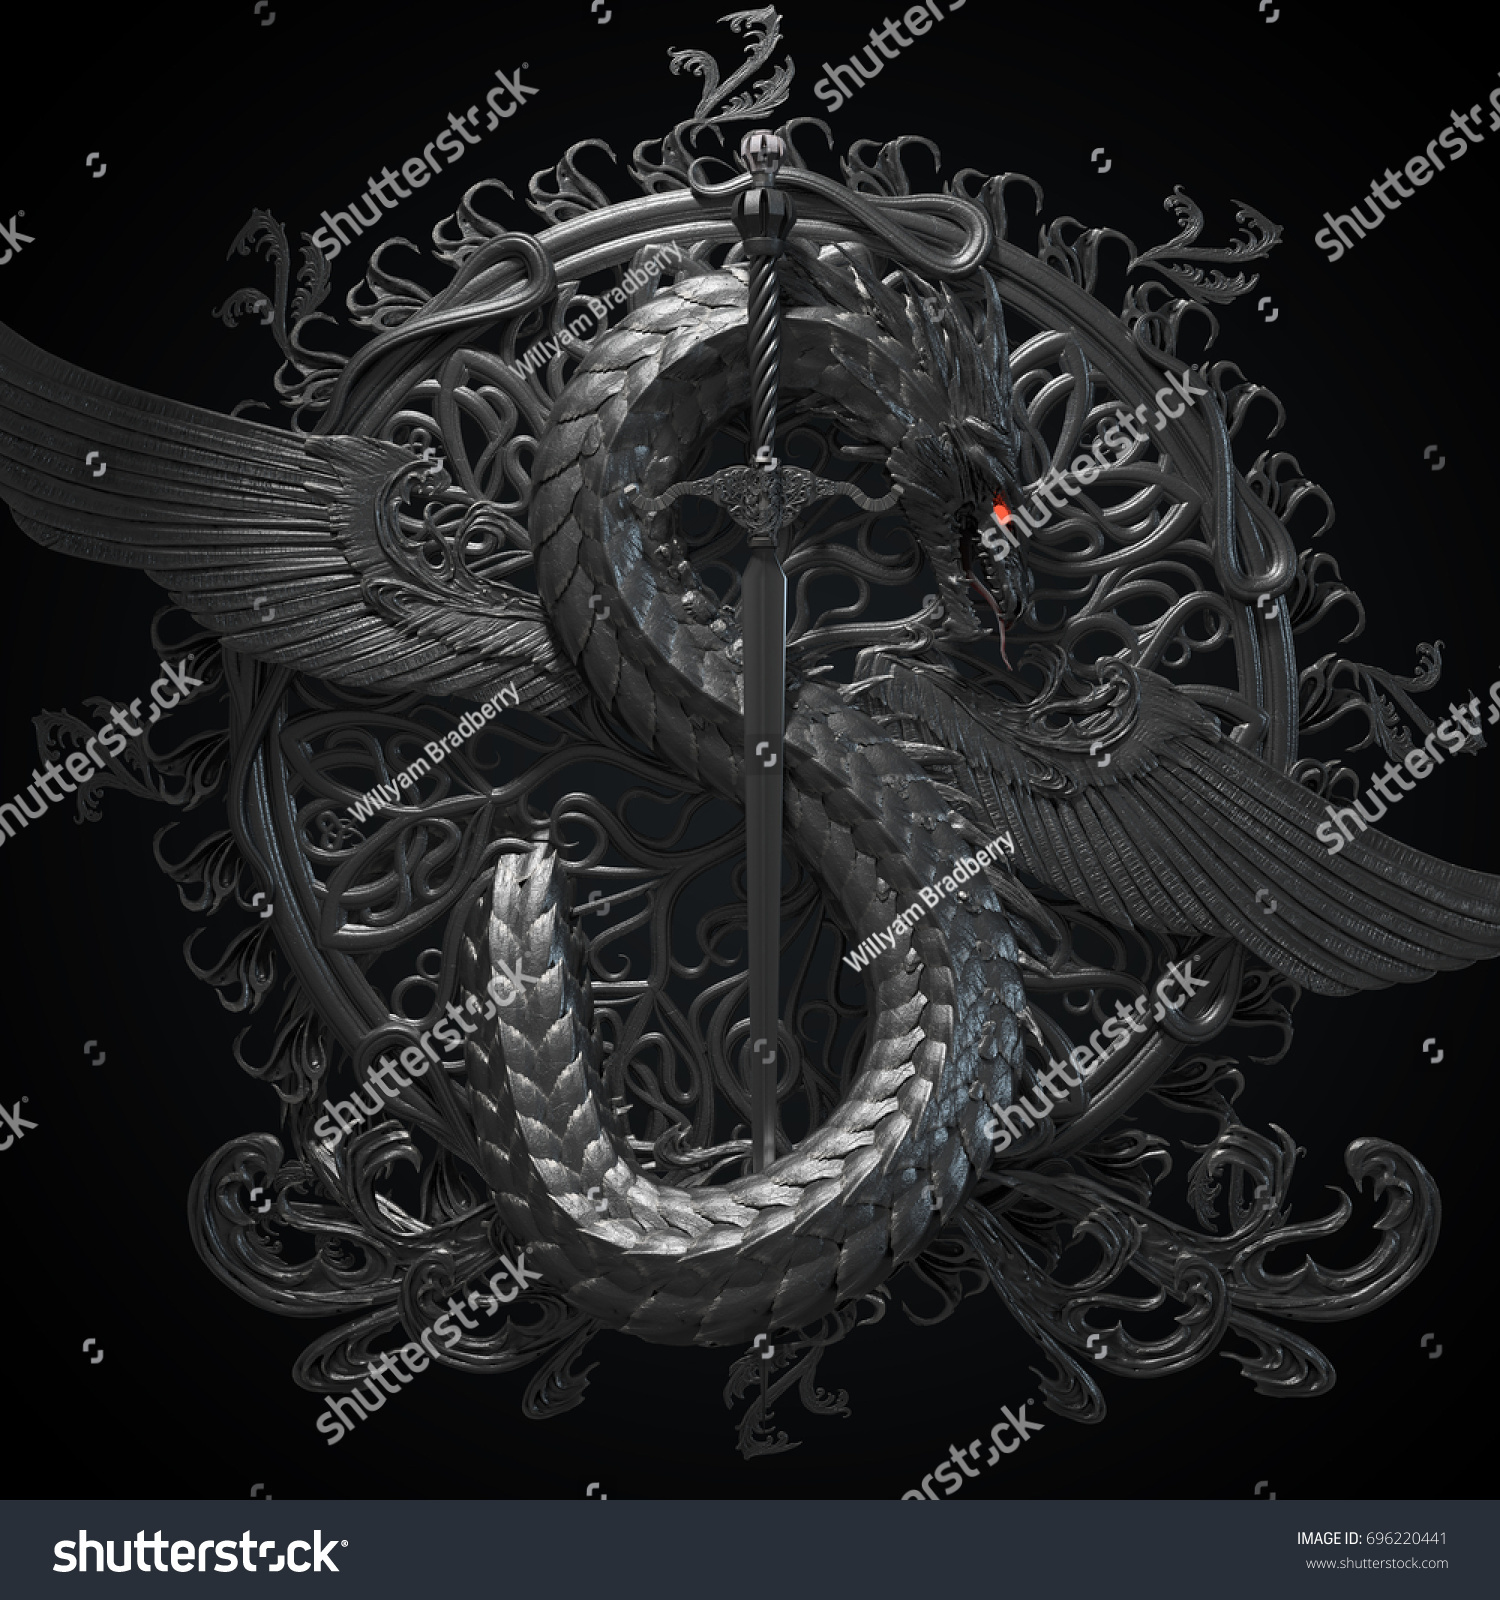 How to breed heraldic dragon - Silver Ornamental Sculpture Of A Dragon With Sword In A Shape Of Symbol Of Dollar Currency